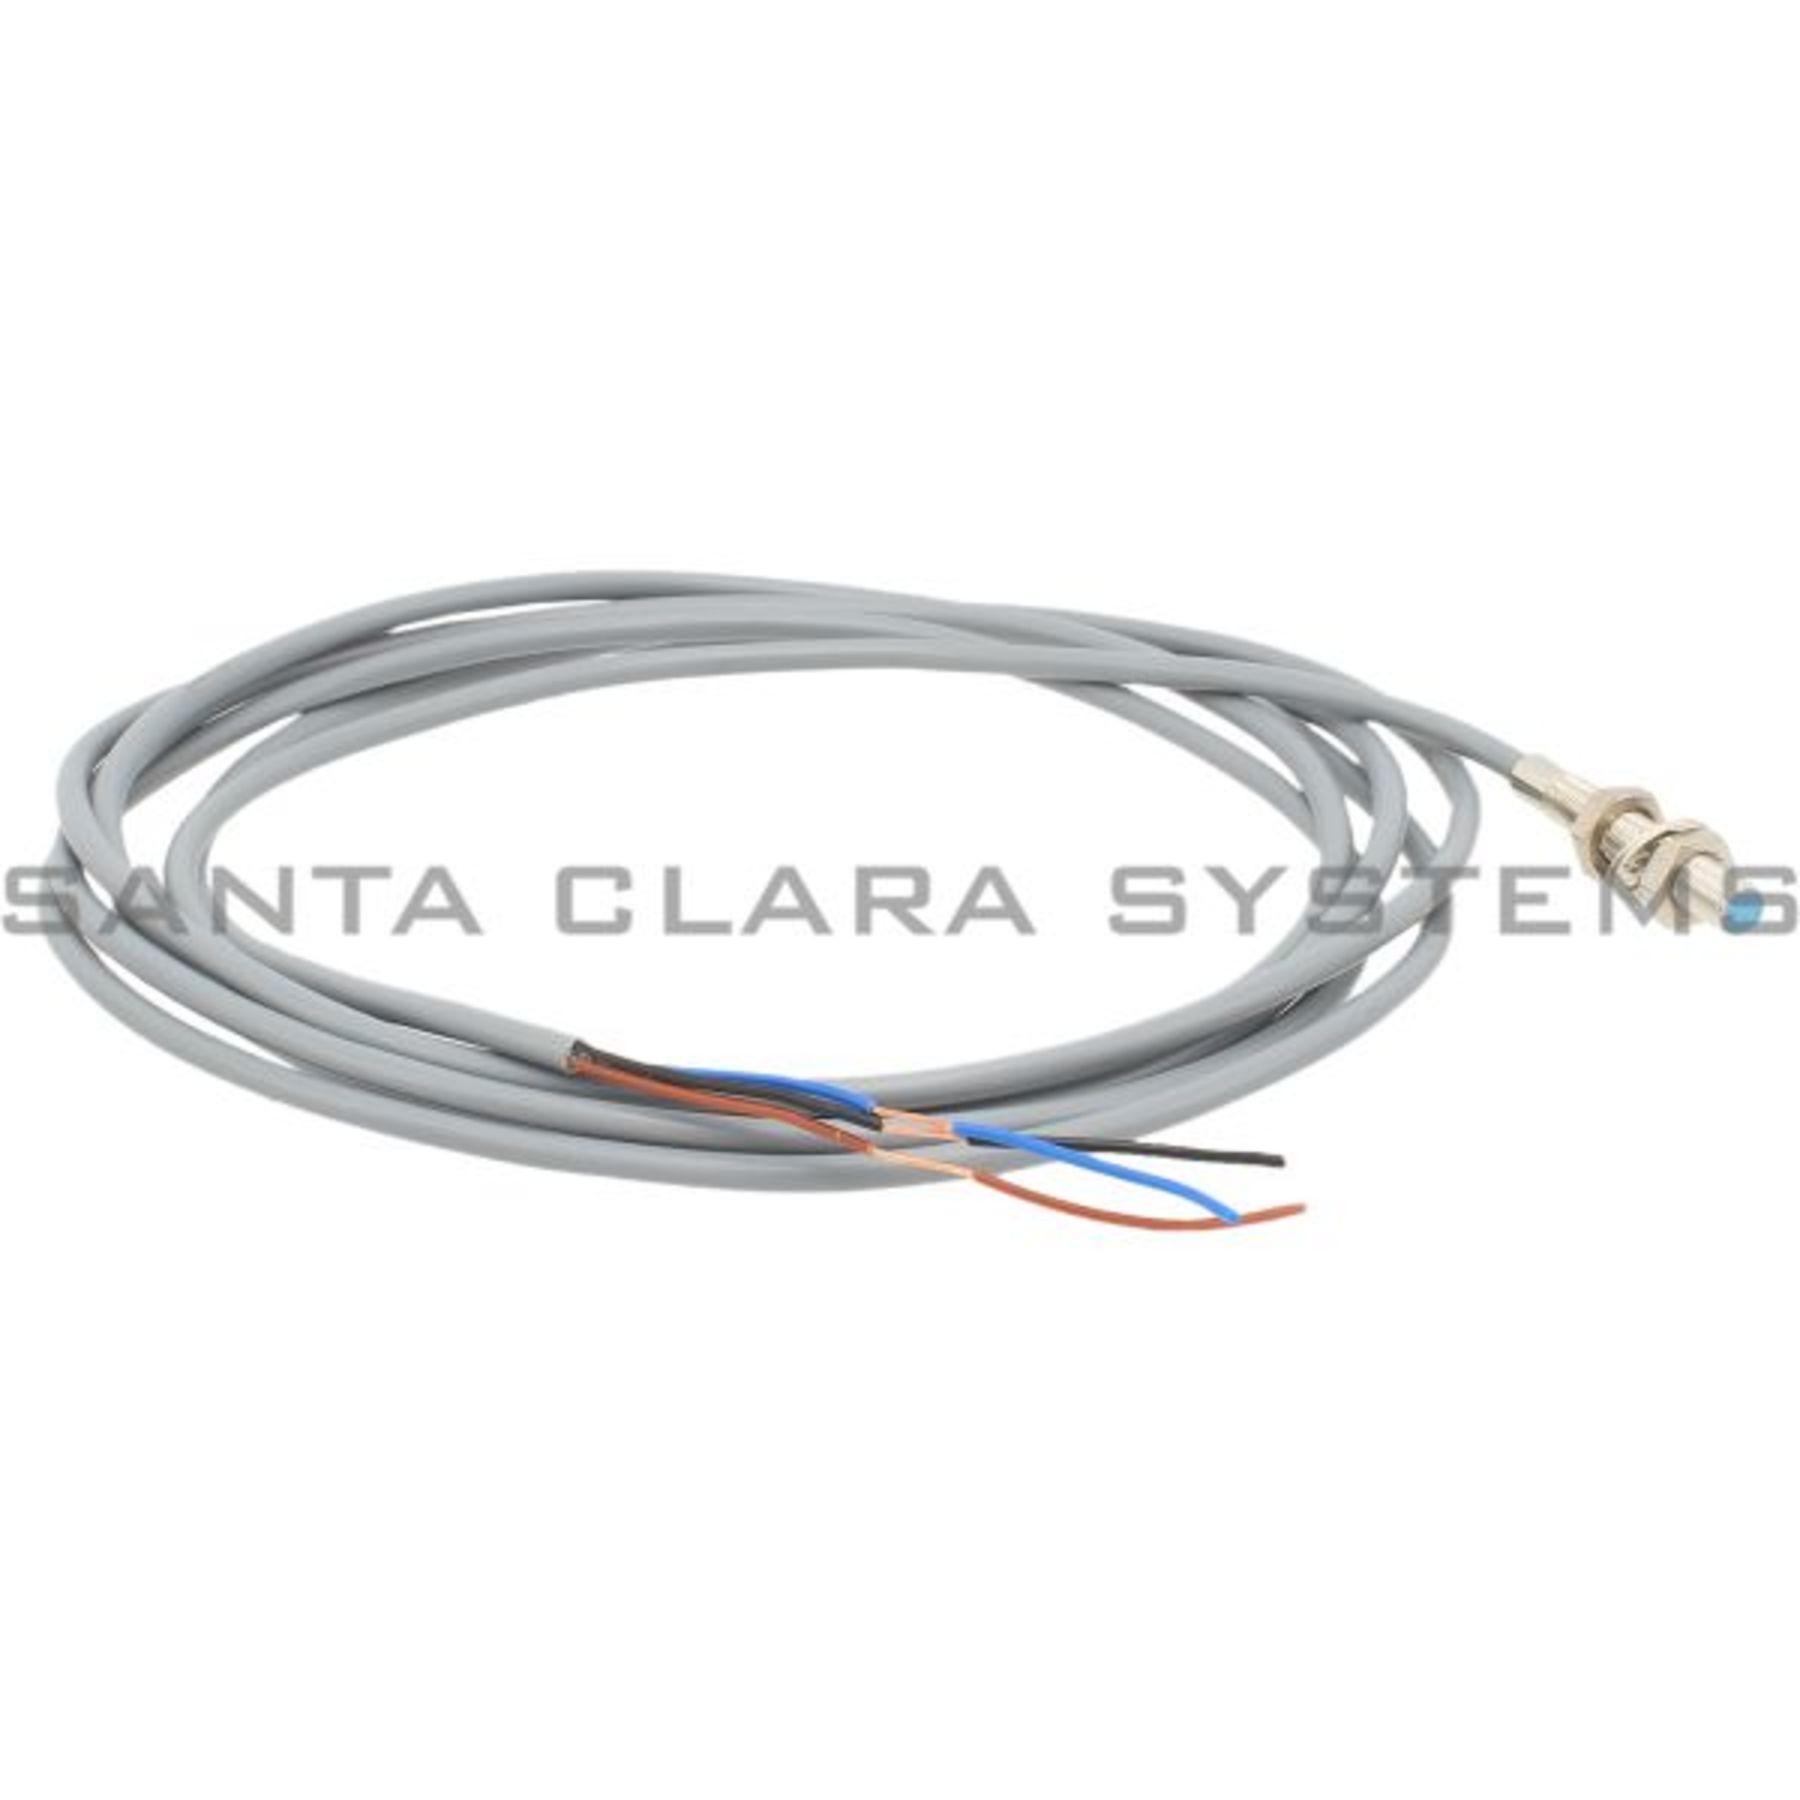 Im05 0b8ps Zw1 Sick In Stock And Ready To Ship Santa Clara Systems